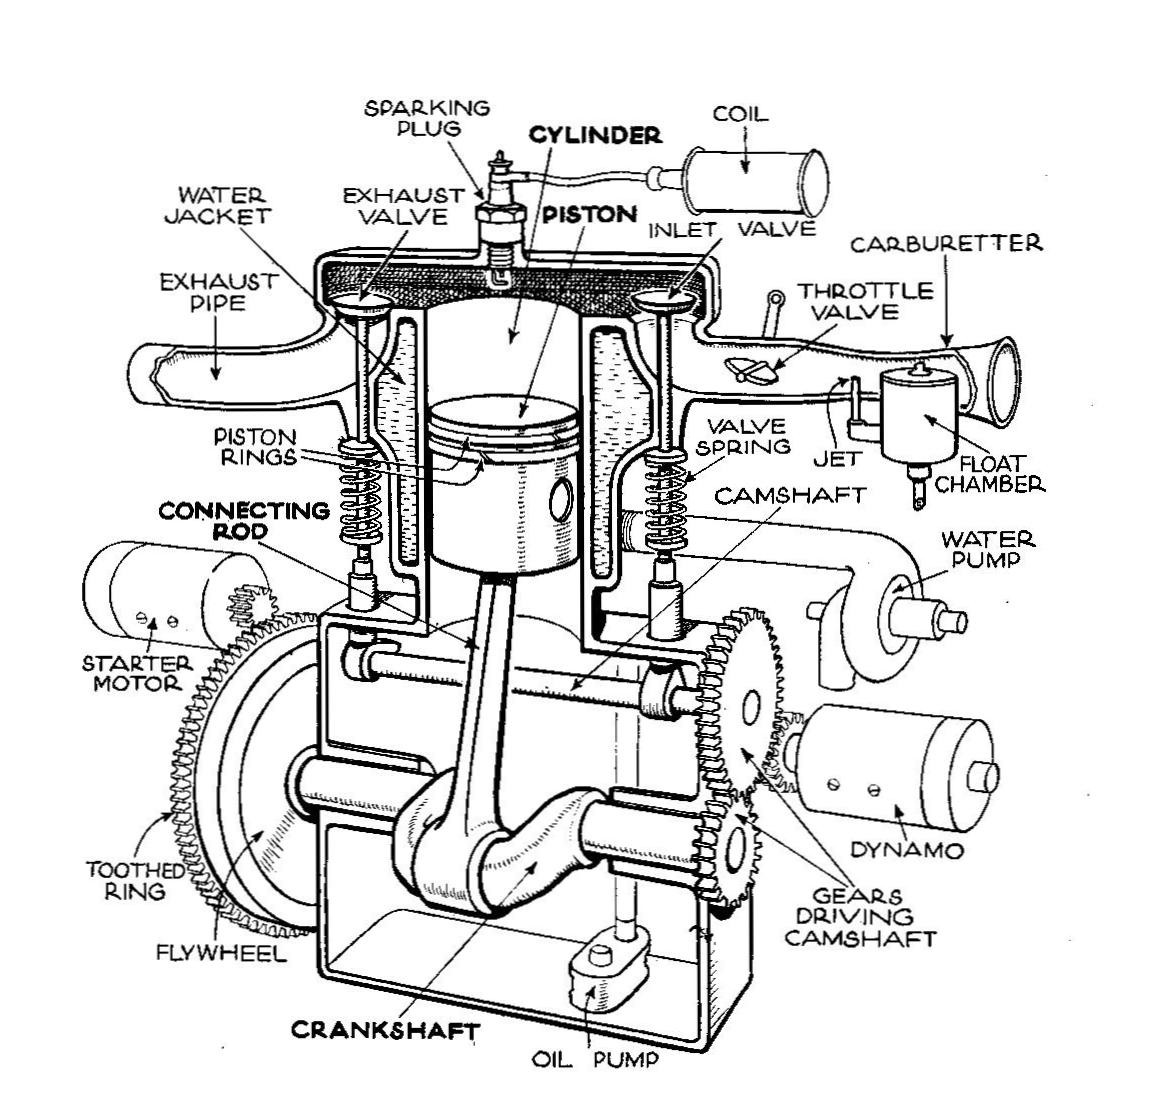 hight resolution of 204412 engine diagram